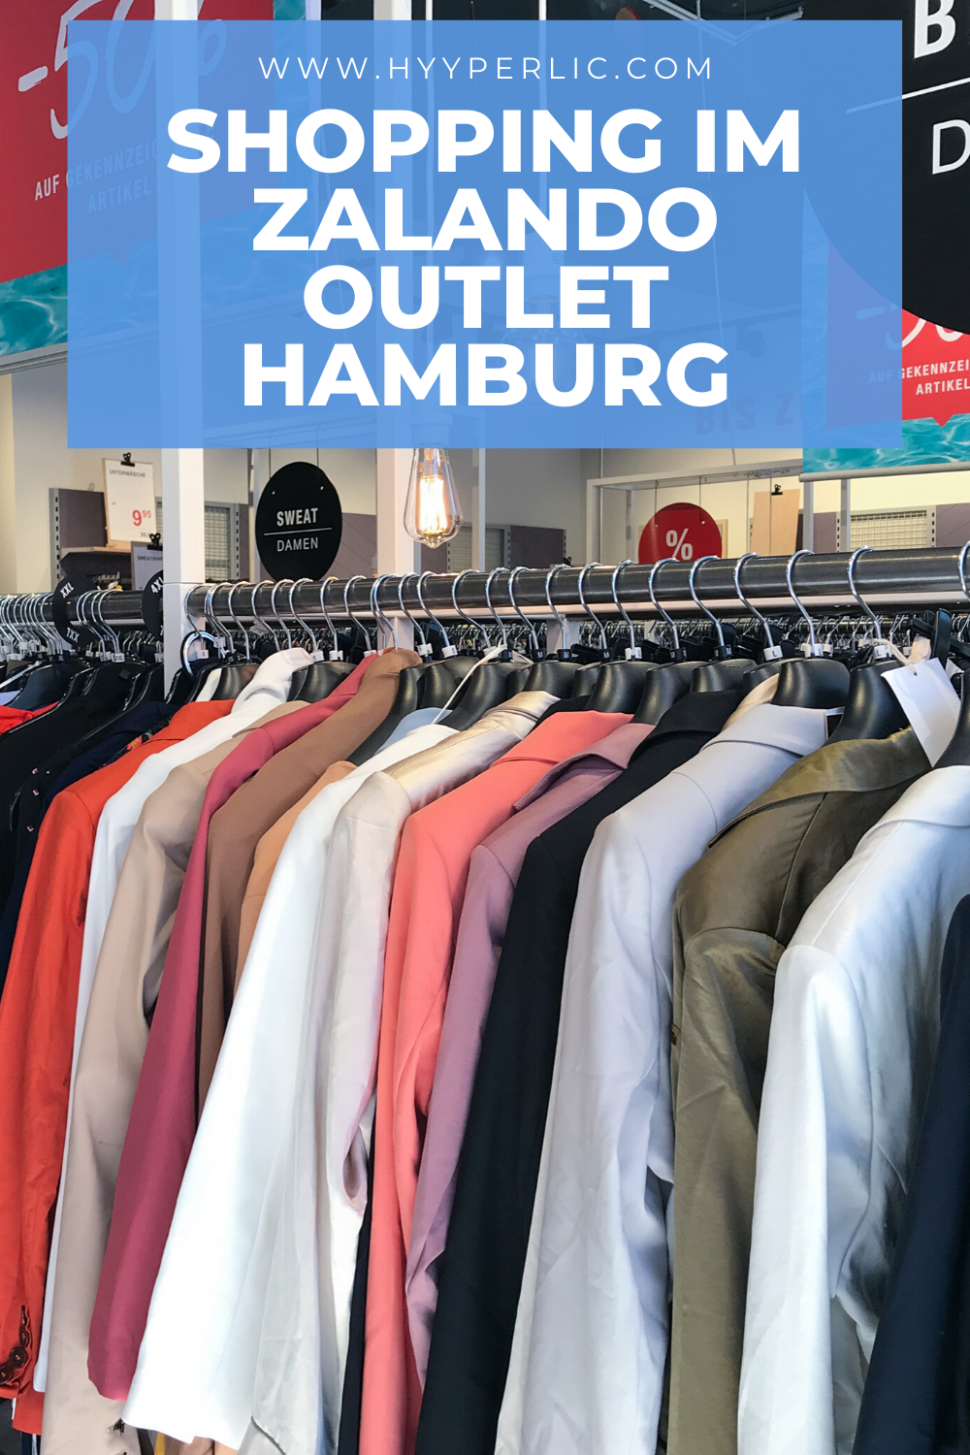 Kleidung Shoppen Polen  Hamburg, Outlet, Outlet center